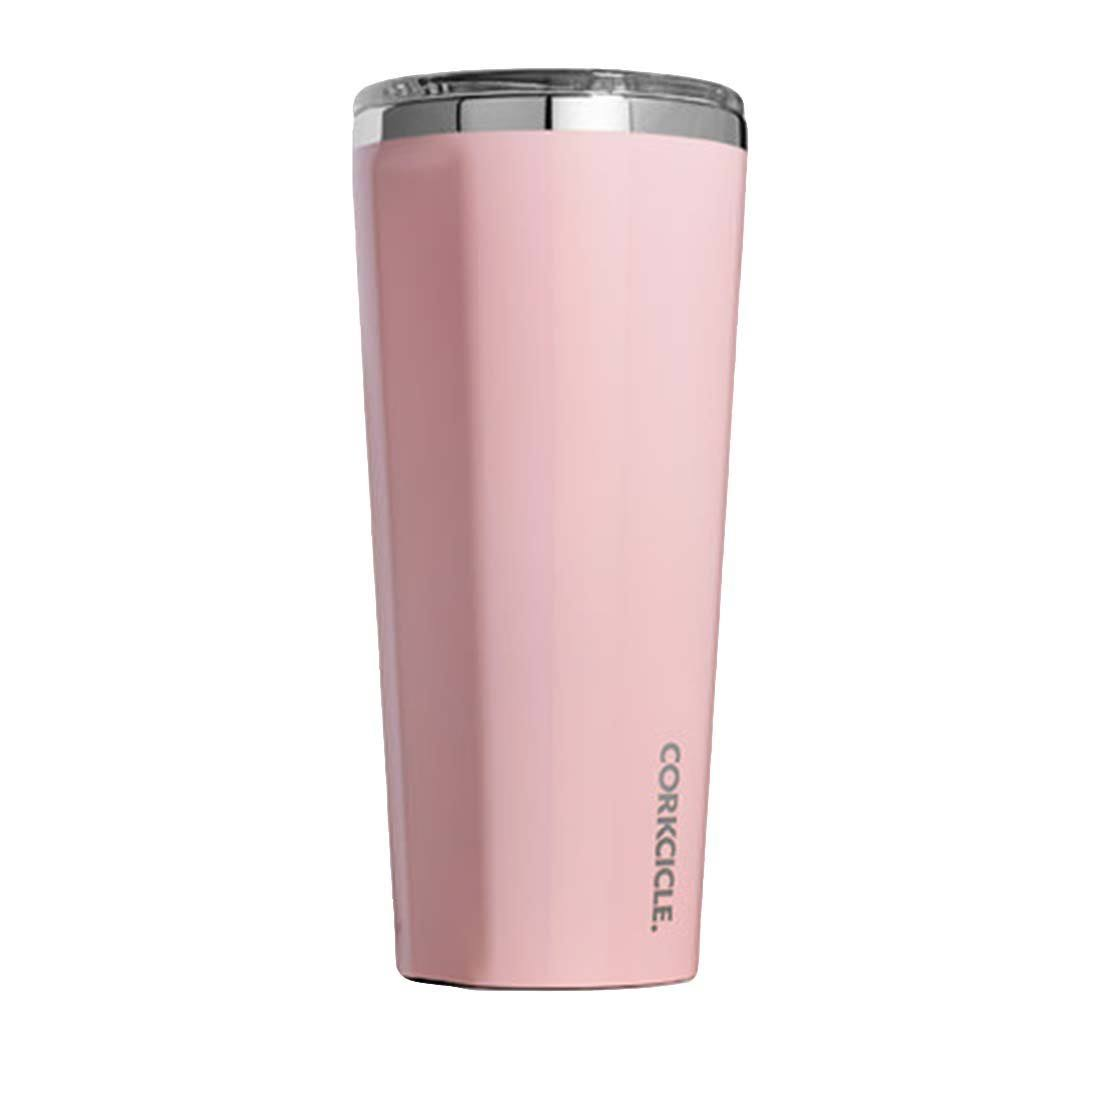 Corkcicle Tumbler Insulated Stainless Steel Bottle Thermos - 24oz, Rose Quartz